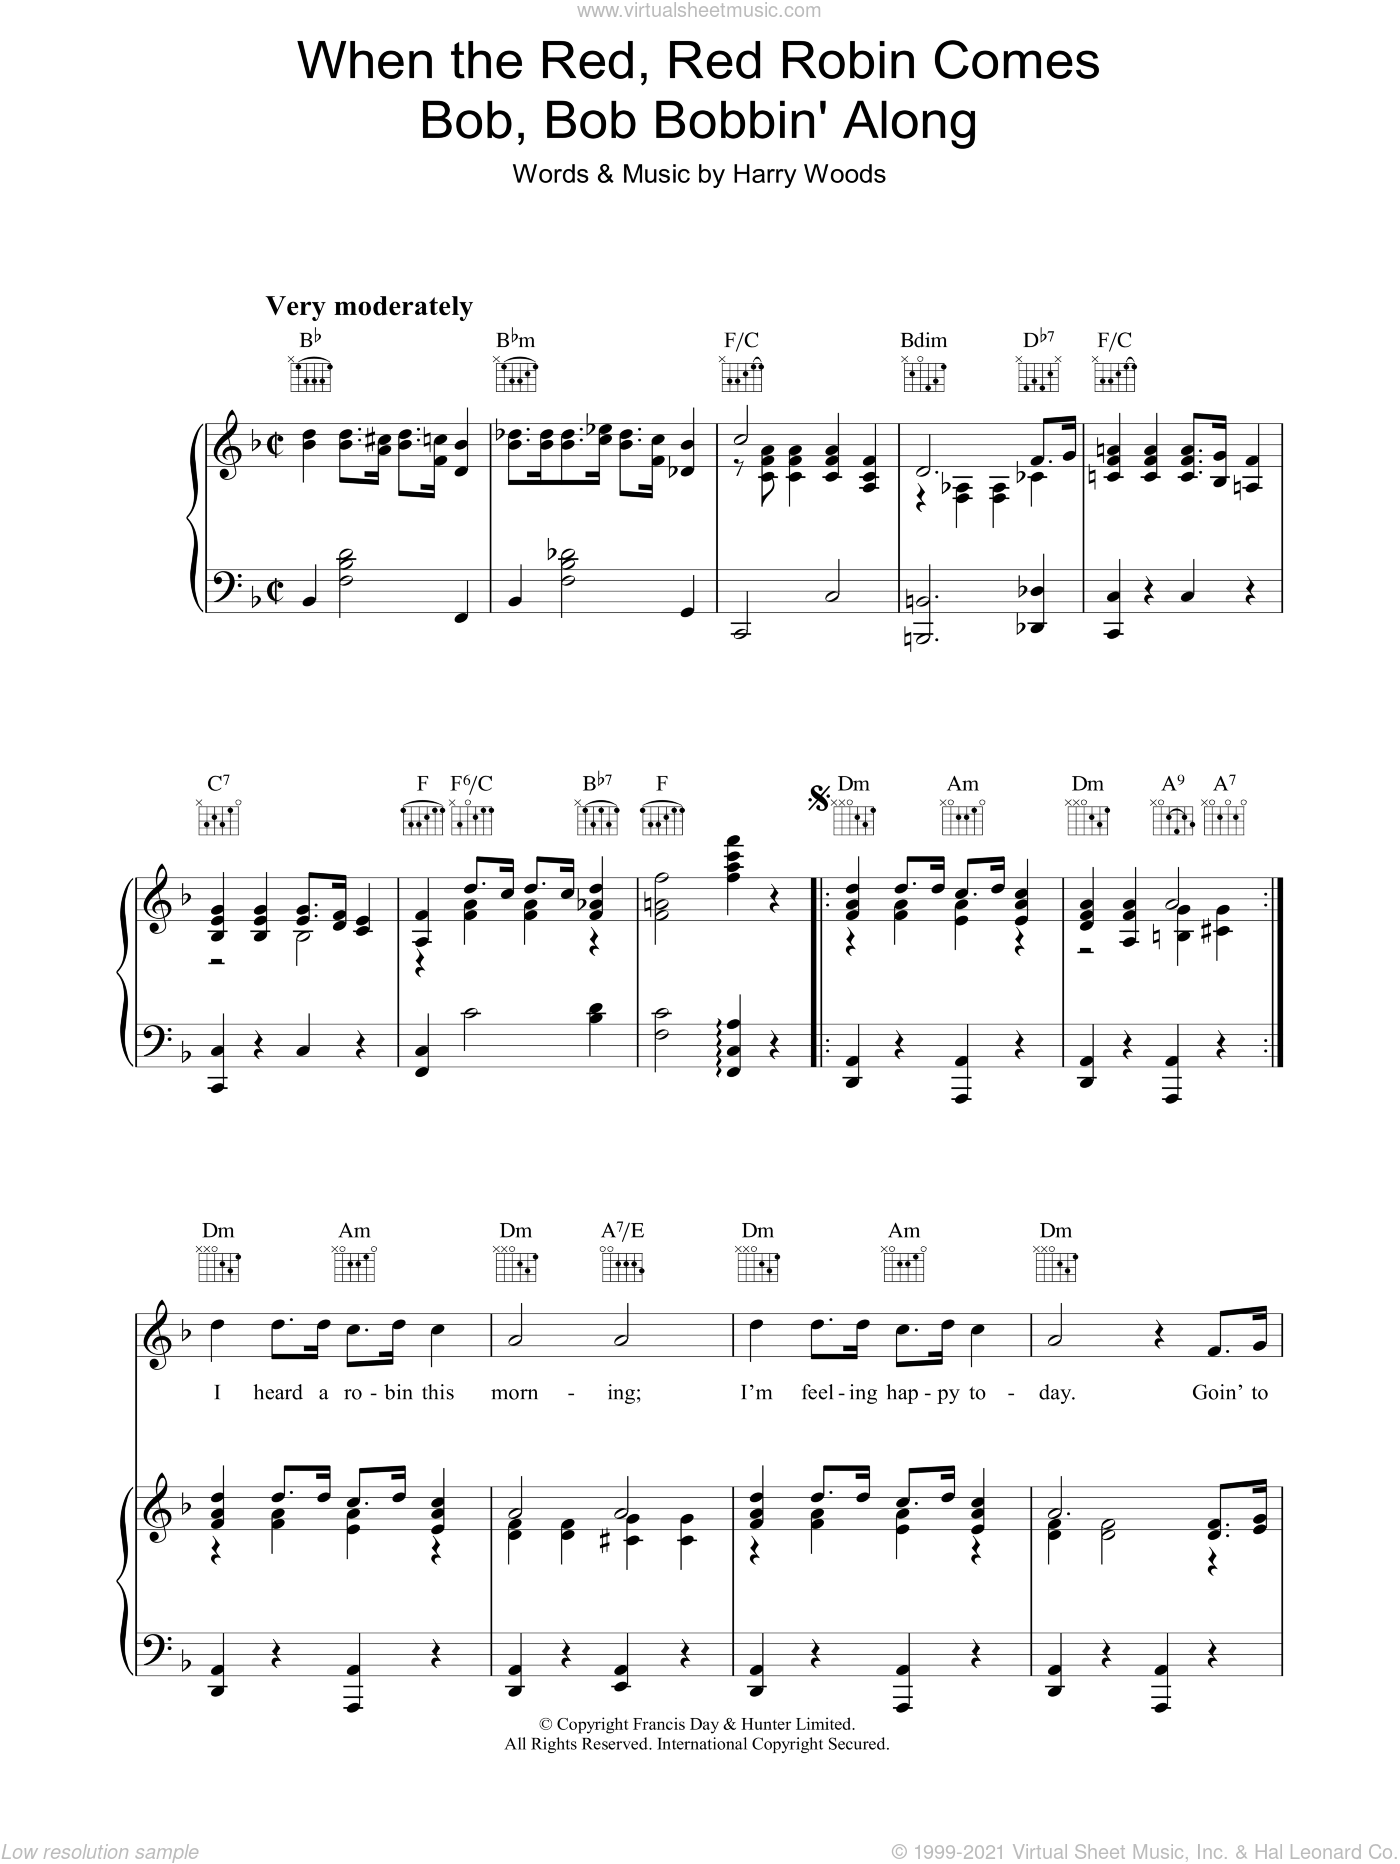 When The Red, Red Robin Comes Bob, Bob Bobbin' Along sheet music for voice, piano or guitar by Harry Woods